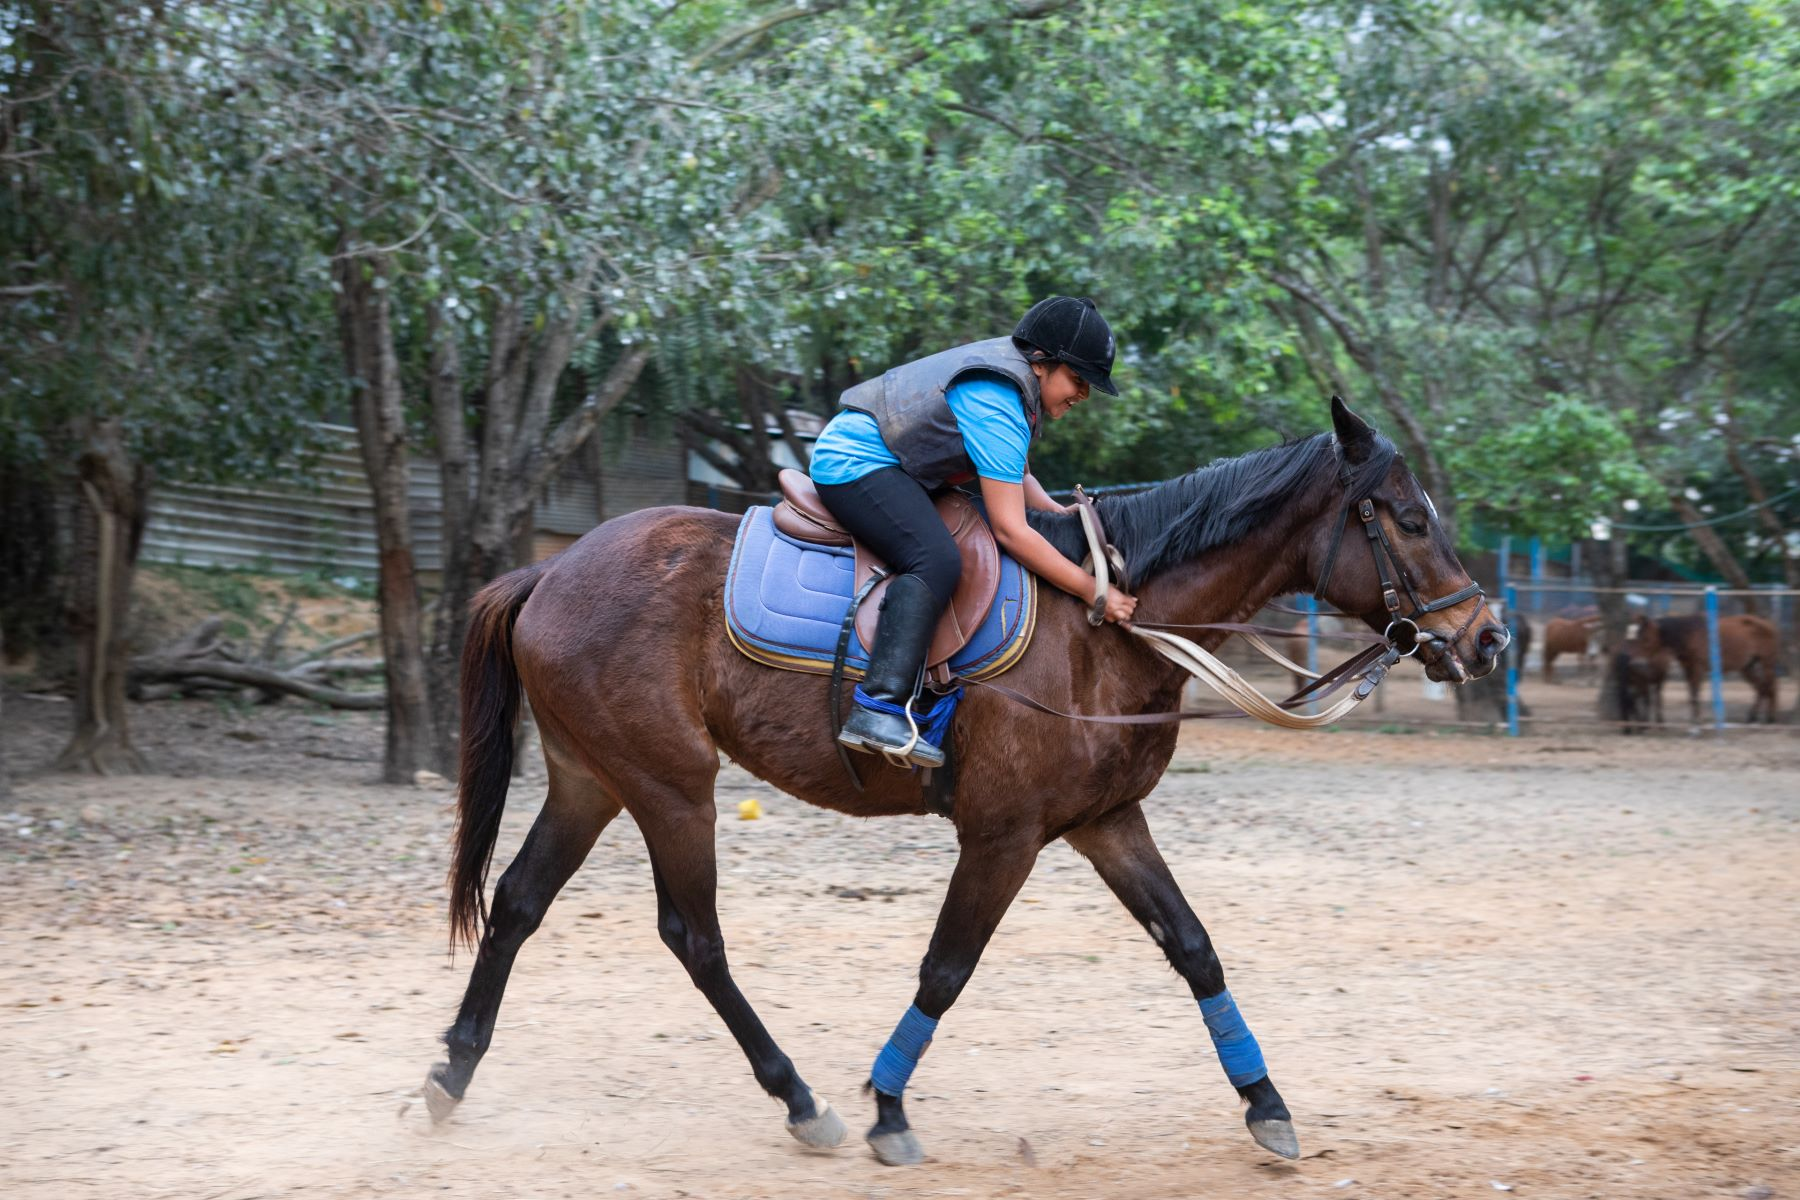 Simhasthita Singh at her riding lessons